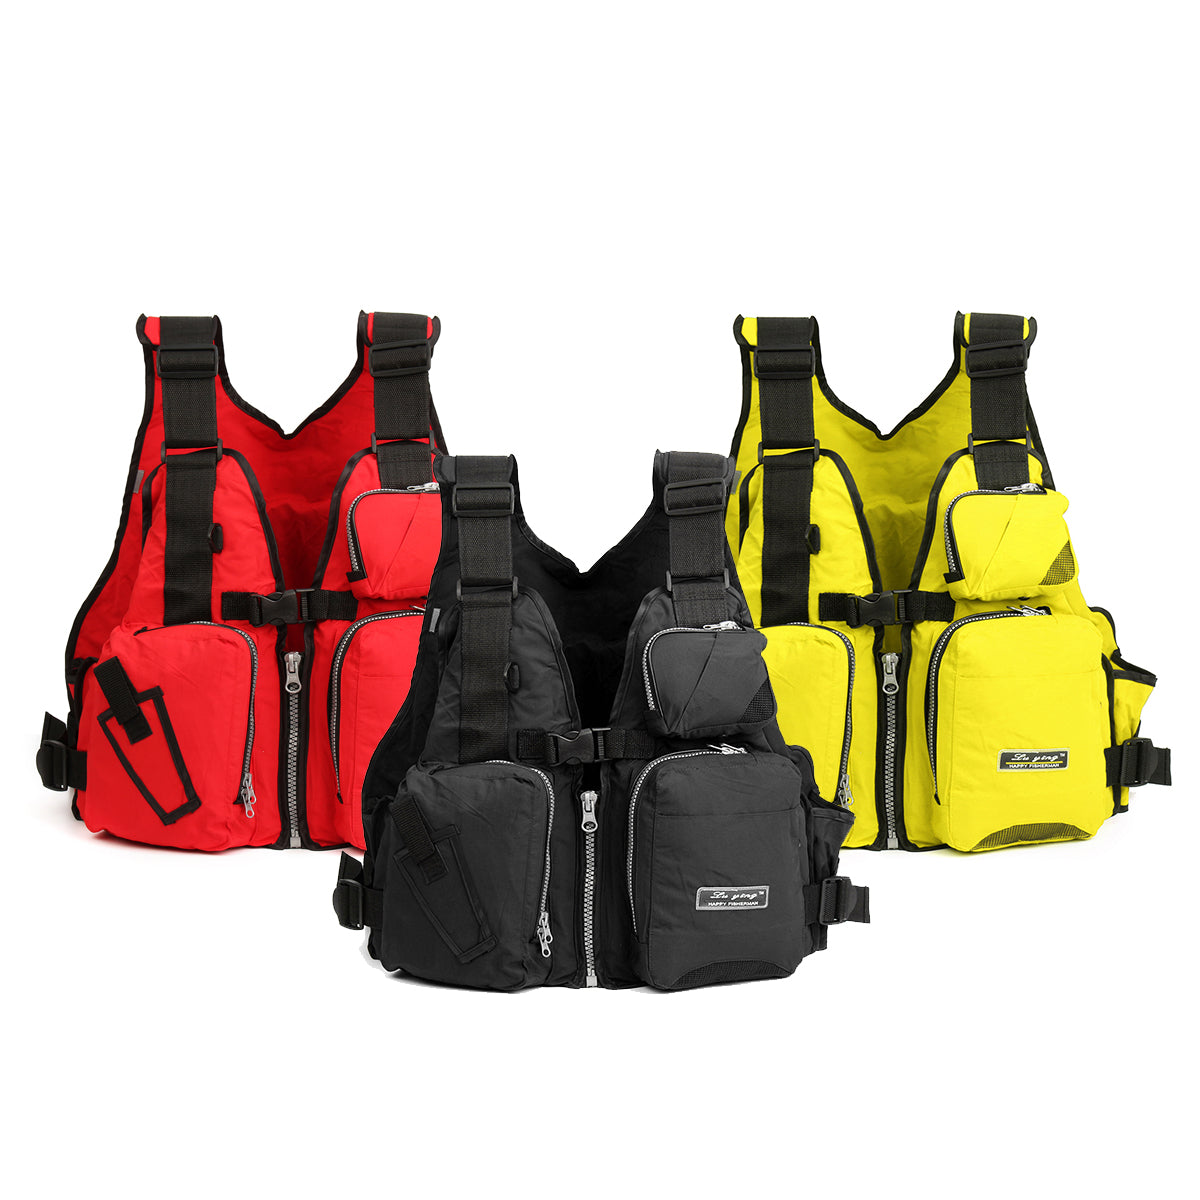 Nylon Adult Adjustable Life Jacket Fishing Vest Jacket Tackle